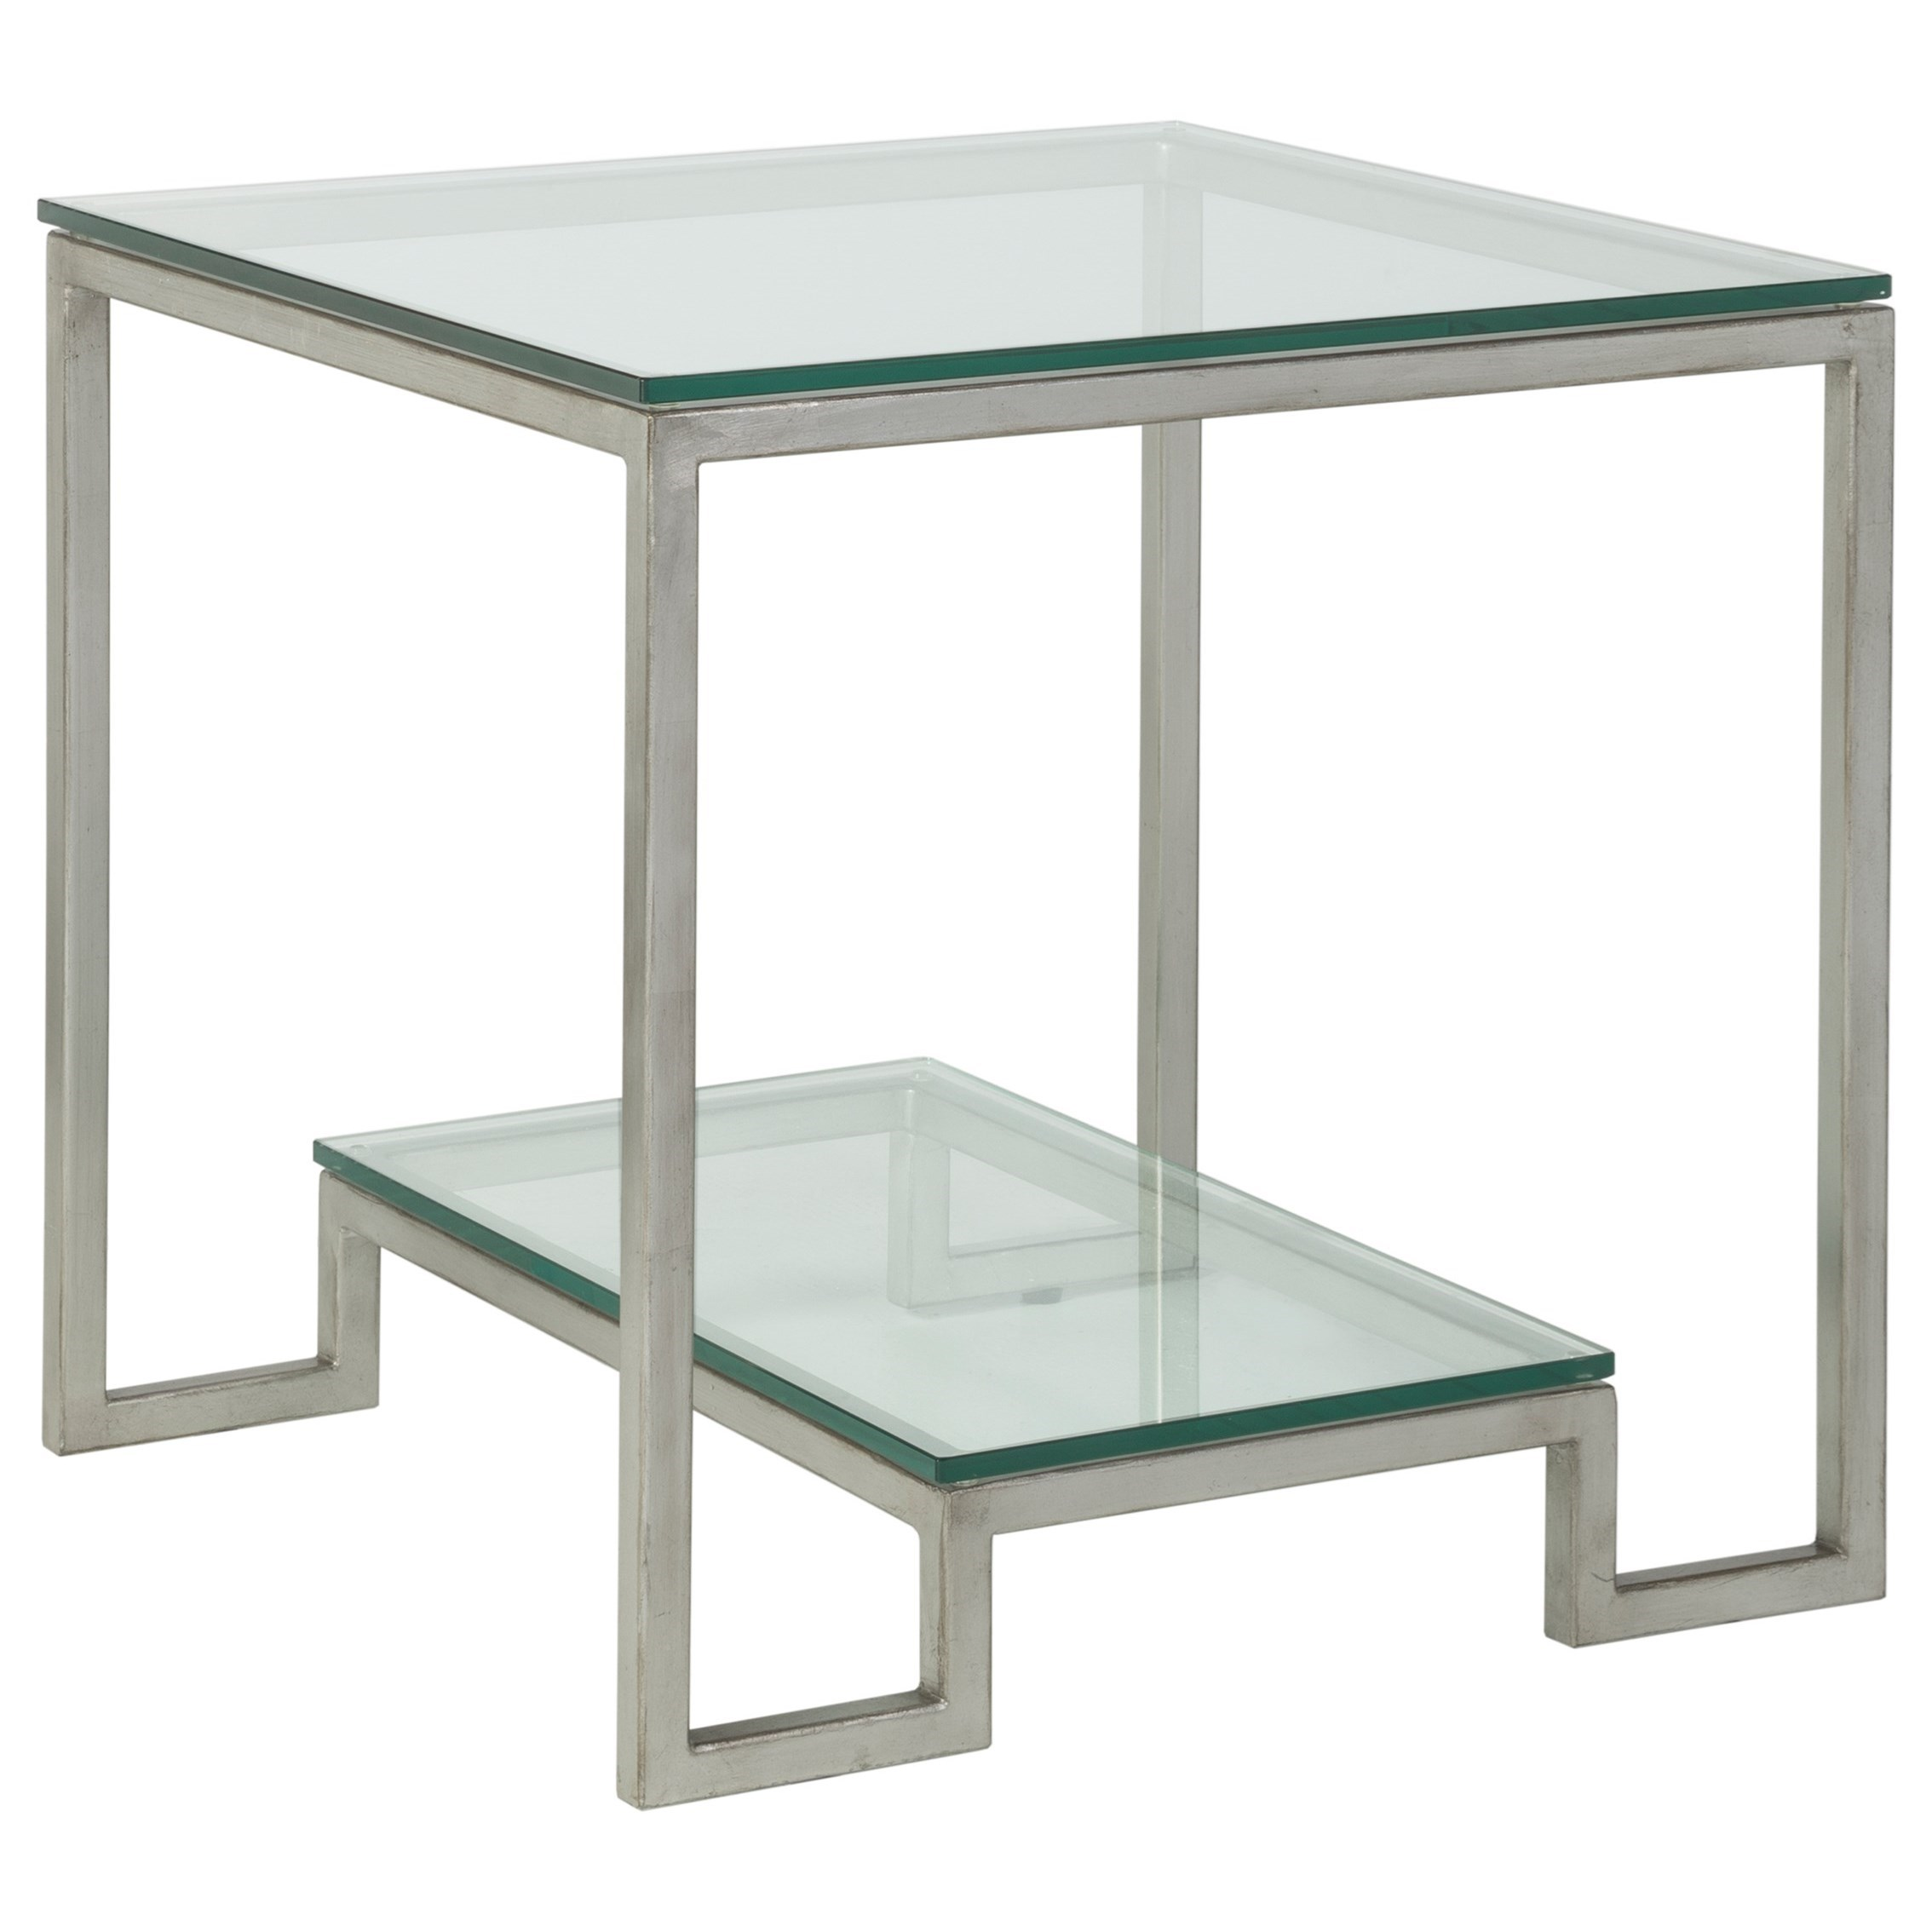 Artistica Metal Bonaire Square End Table by Artistica at Baer's Furniture